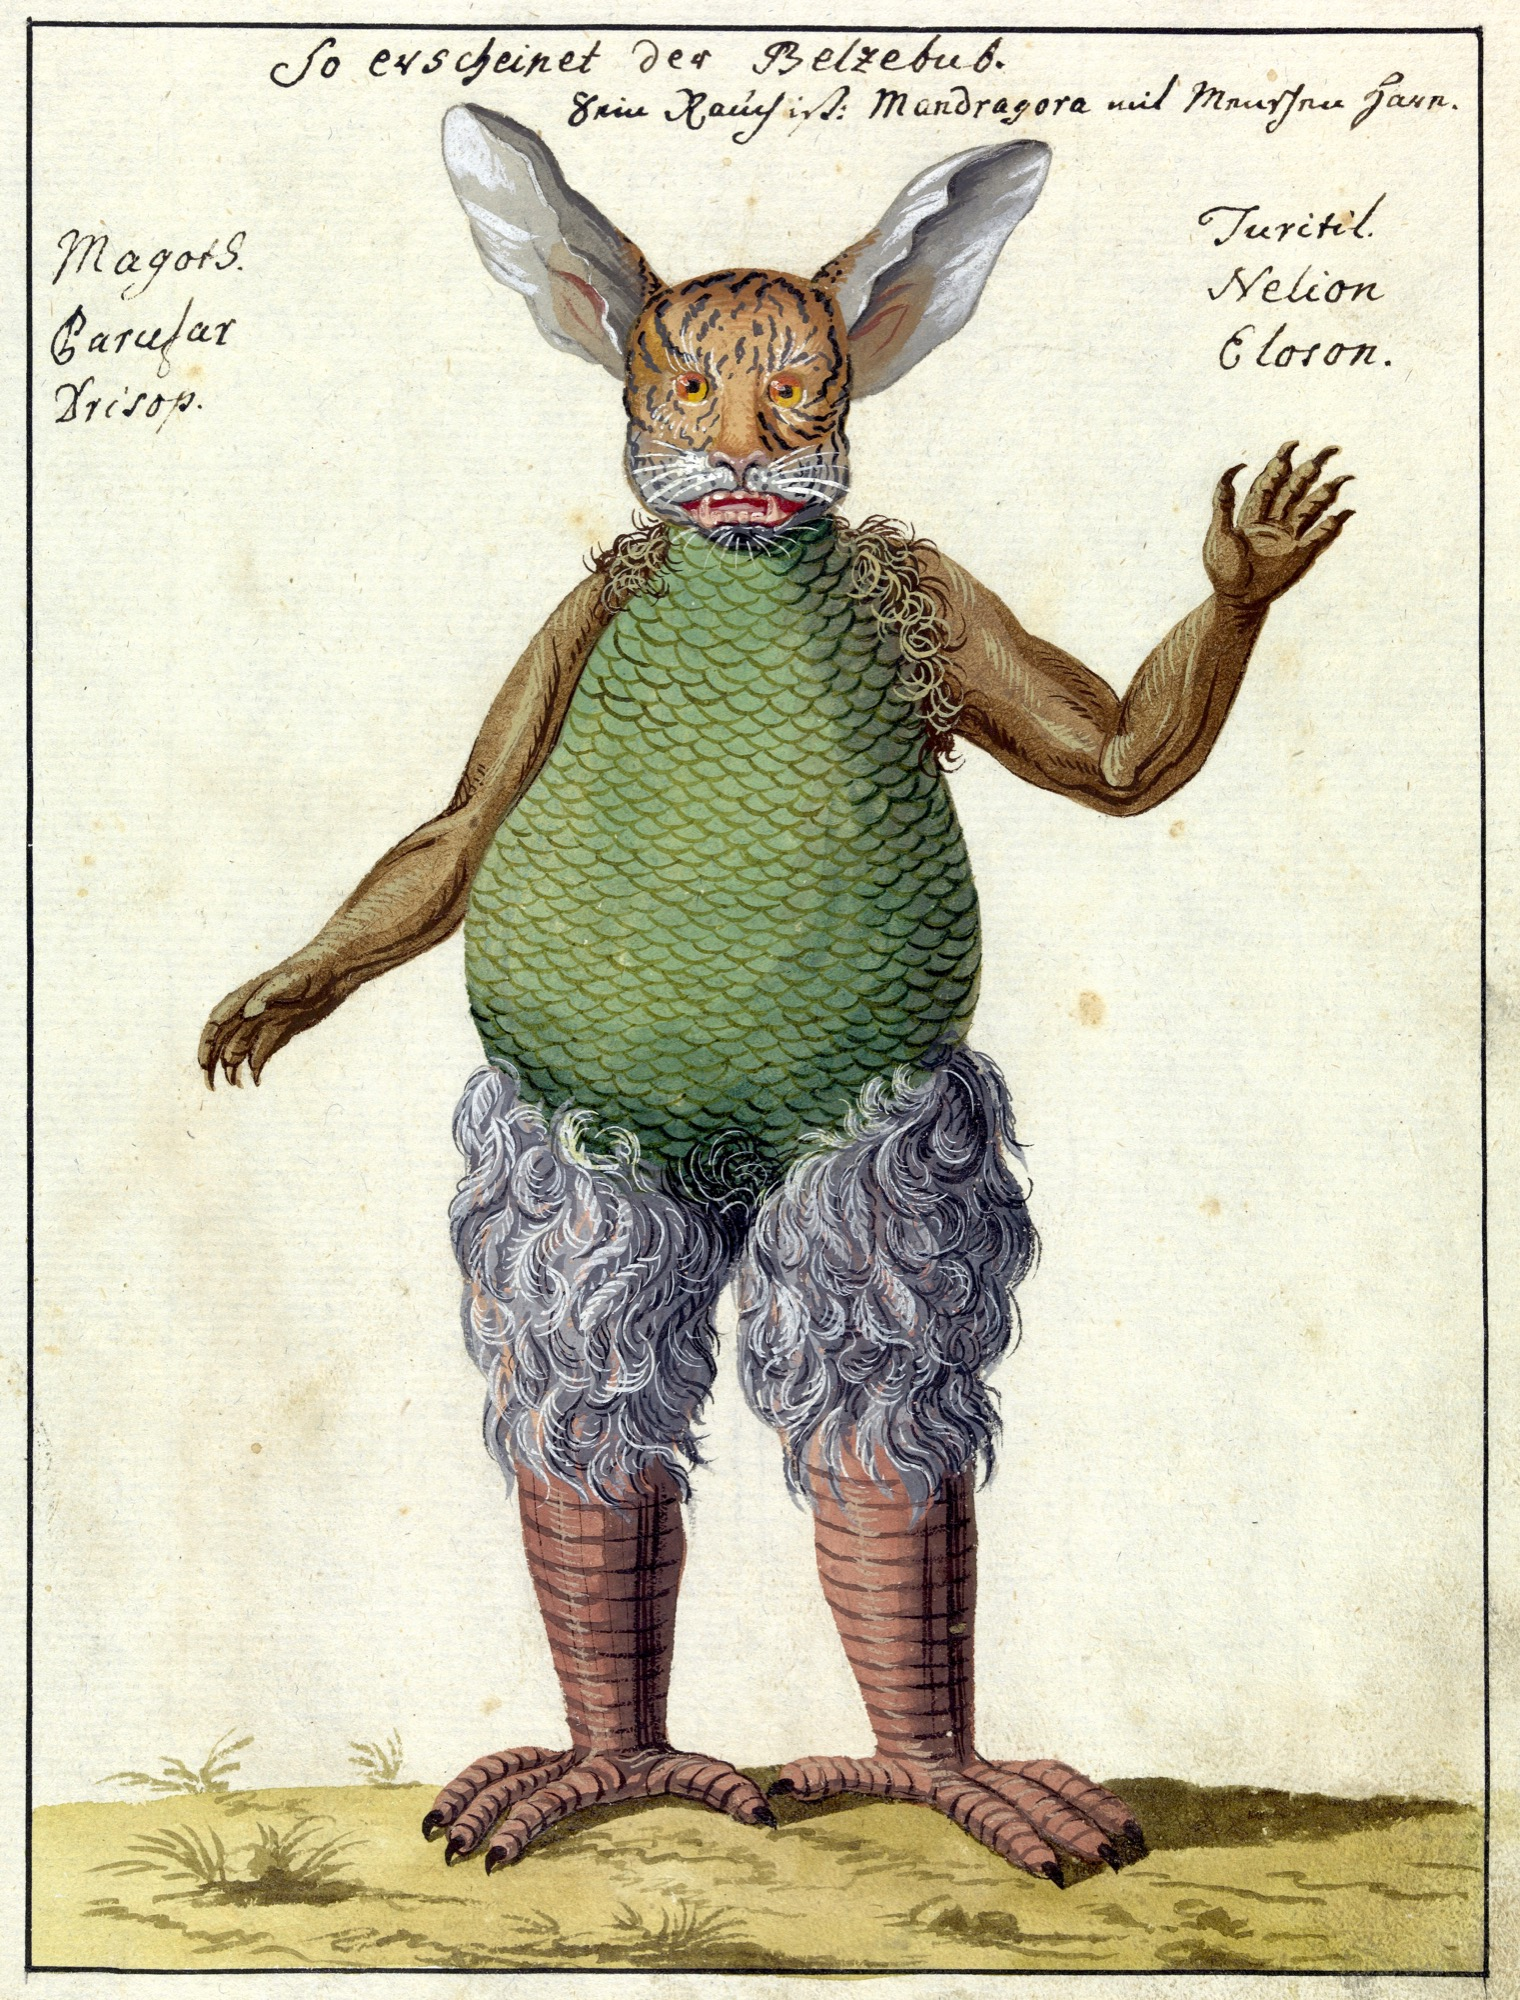 L0076362 Illustration of Beelzebub, MS 1766 Credit: Wellcome Library, London. Wellcome Images images@wellcome.ac.uk http://wellcomeimages.org Beelzebub - portrayed with rabbit ears, a tiger's face, scaled body, clawed fingers and bird's legs. Compendium rarissimum totius Artis Magicae sistematisatae per celeberrimos Artis hujus Magistros. Anno 1057. Noli me tangere. Watercolour c. 1775 Published:  -  Copyrighted work available under Creative Commons Attribution only licence CC BY 4.0 http://creativecommons.org/licenses/by/4.0/